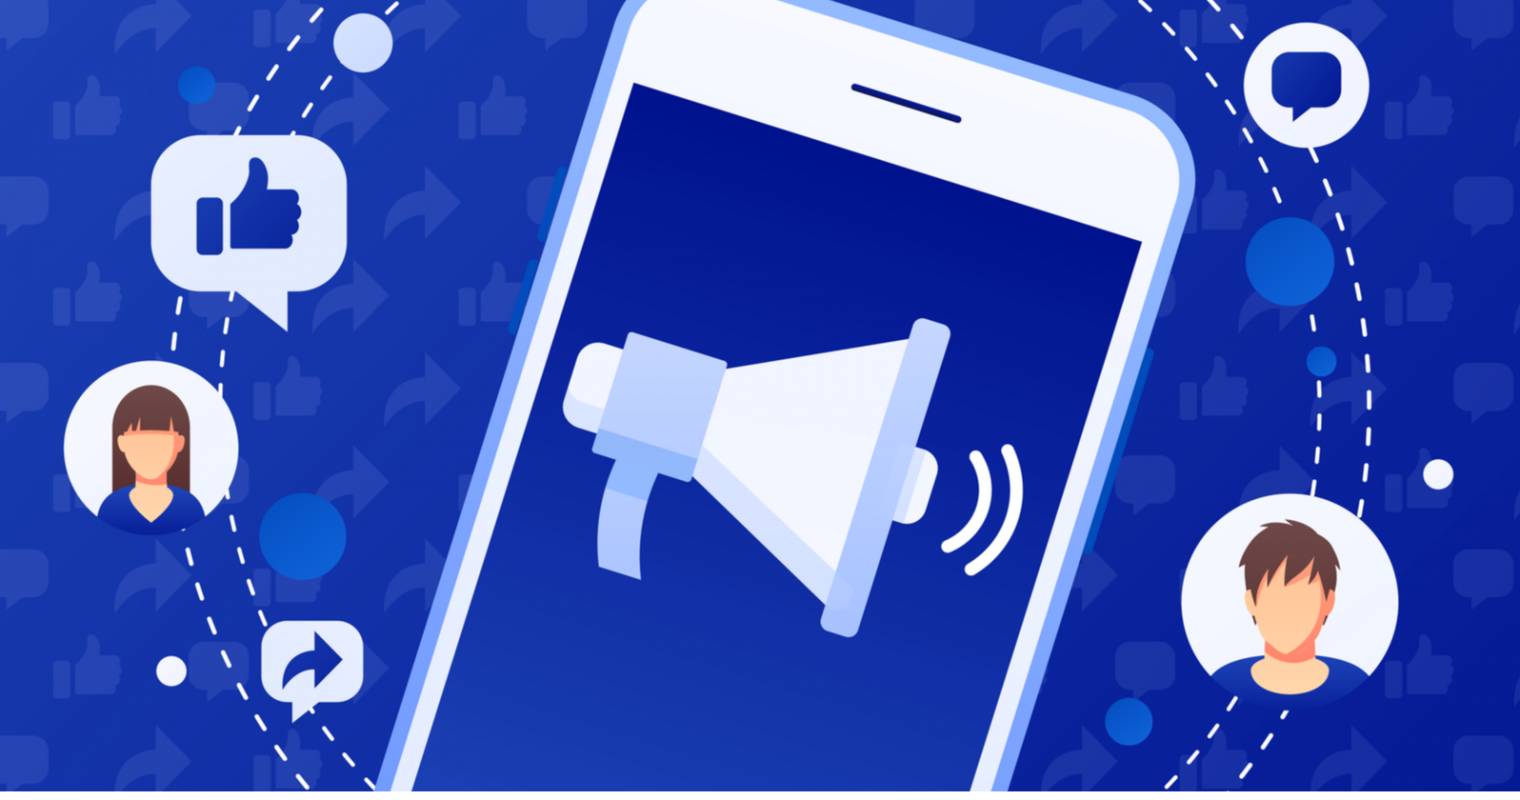 Aggregated Event Measurement in Facebook: What You Need to Know